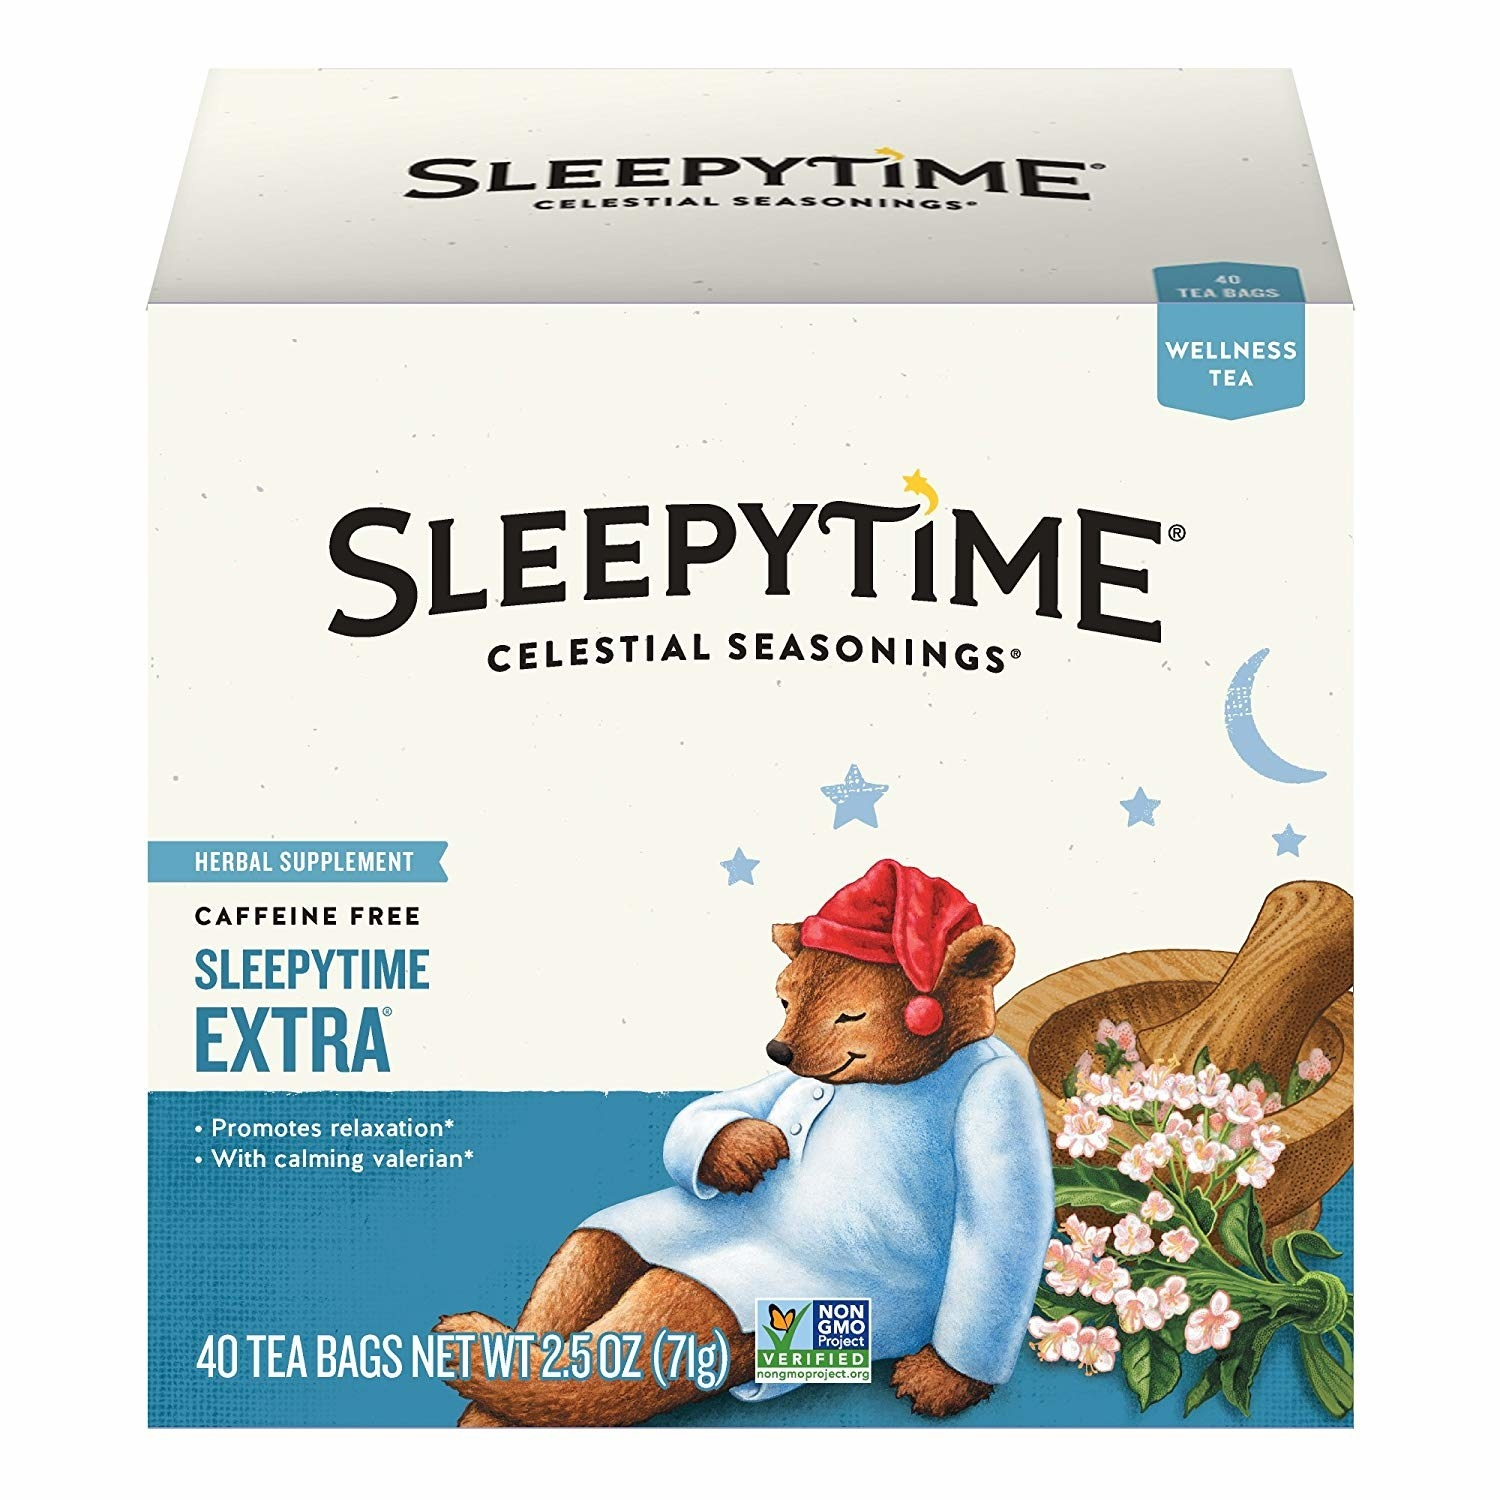 a box of the tea with a sleeping bear on it in pajamas